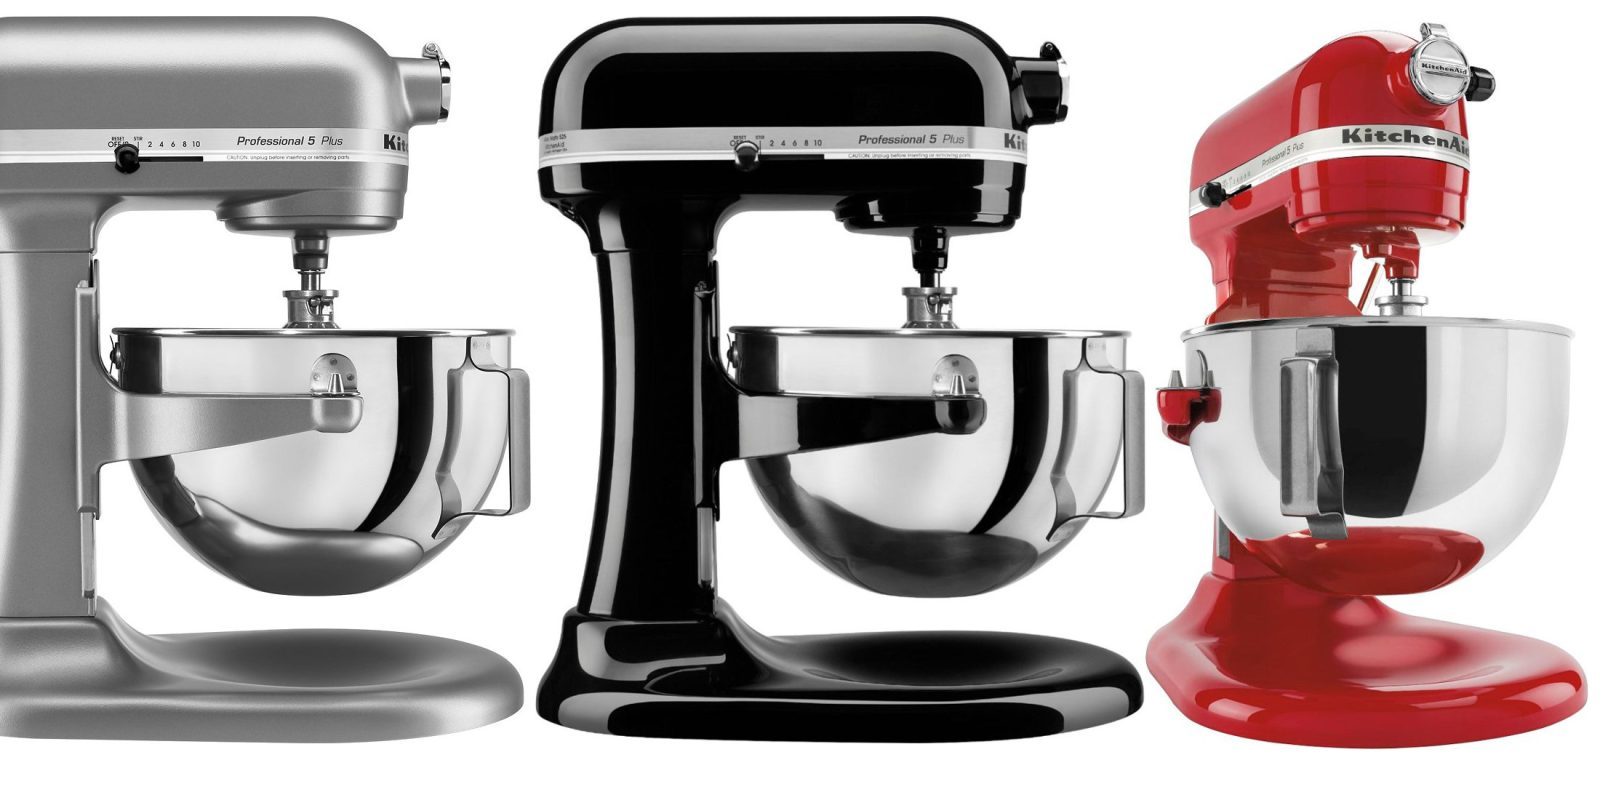 Jump Up To The Kitchenaid Pro 500 Series Stand Mixer At As Much As